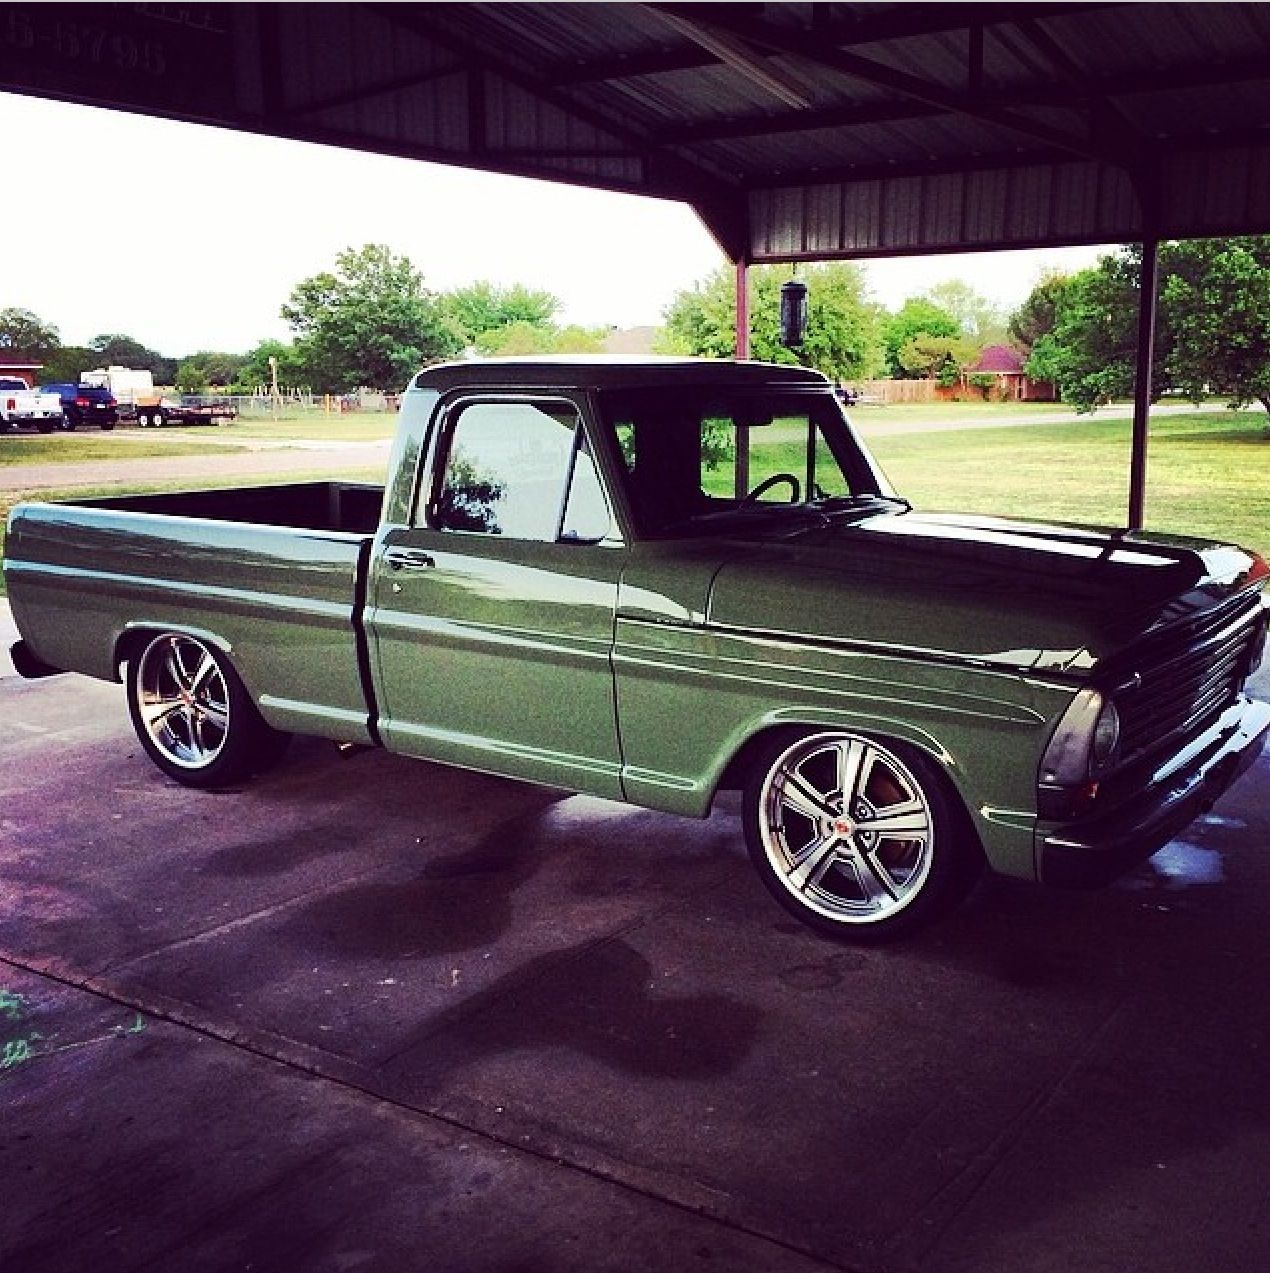 Gas monkey garage gas monkey pinterest garage monkey and gas - Gas Monkey Garage I Love This Truck